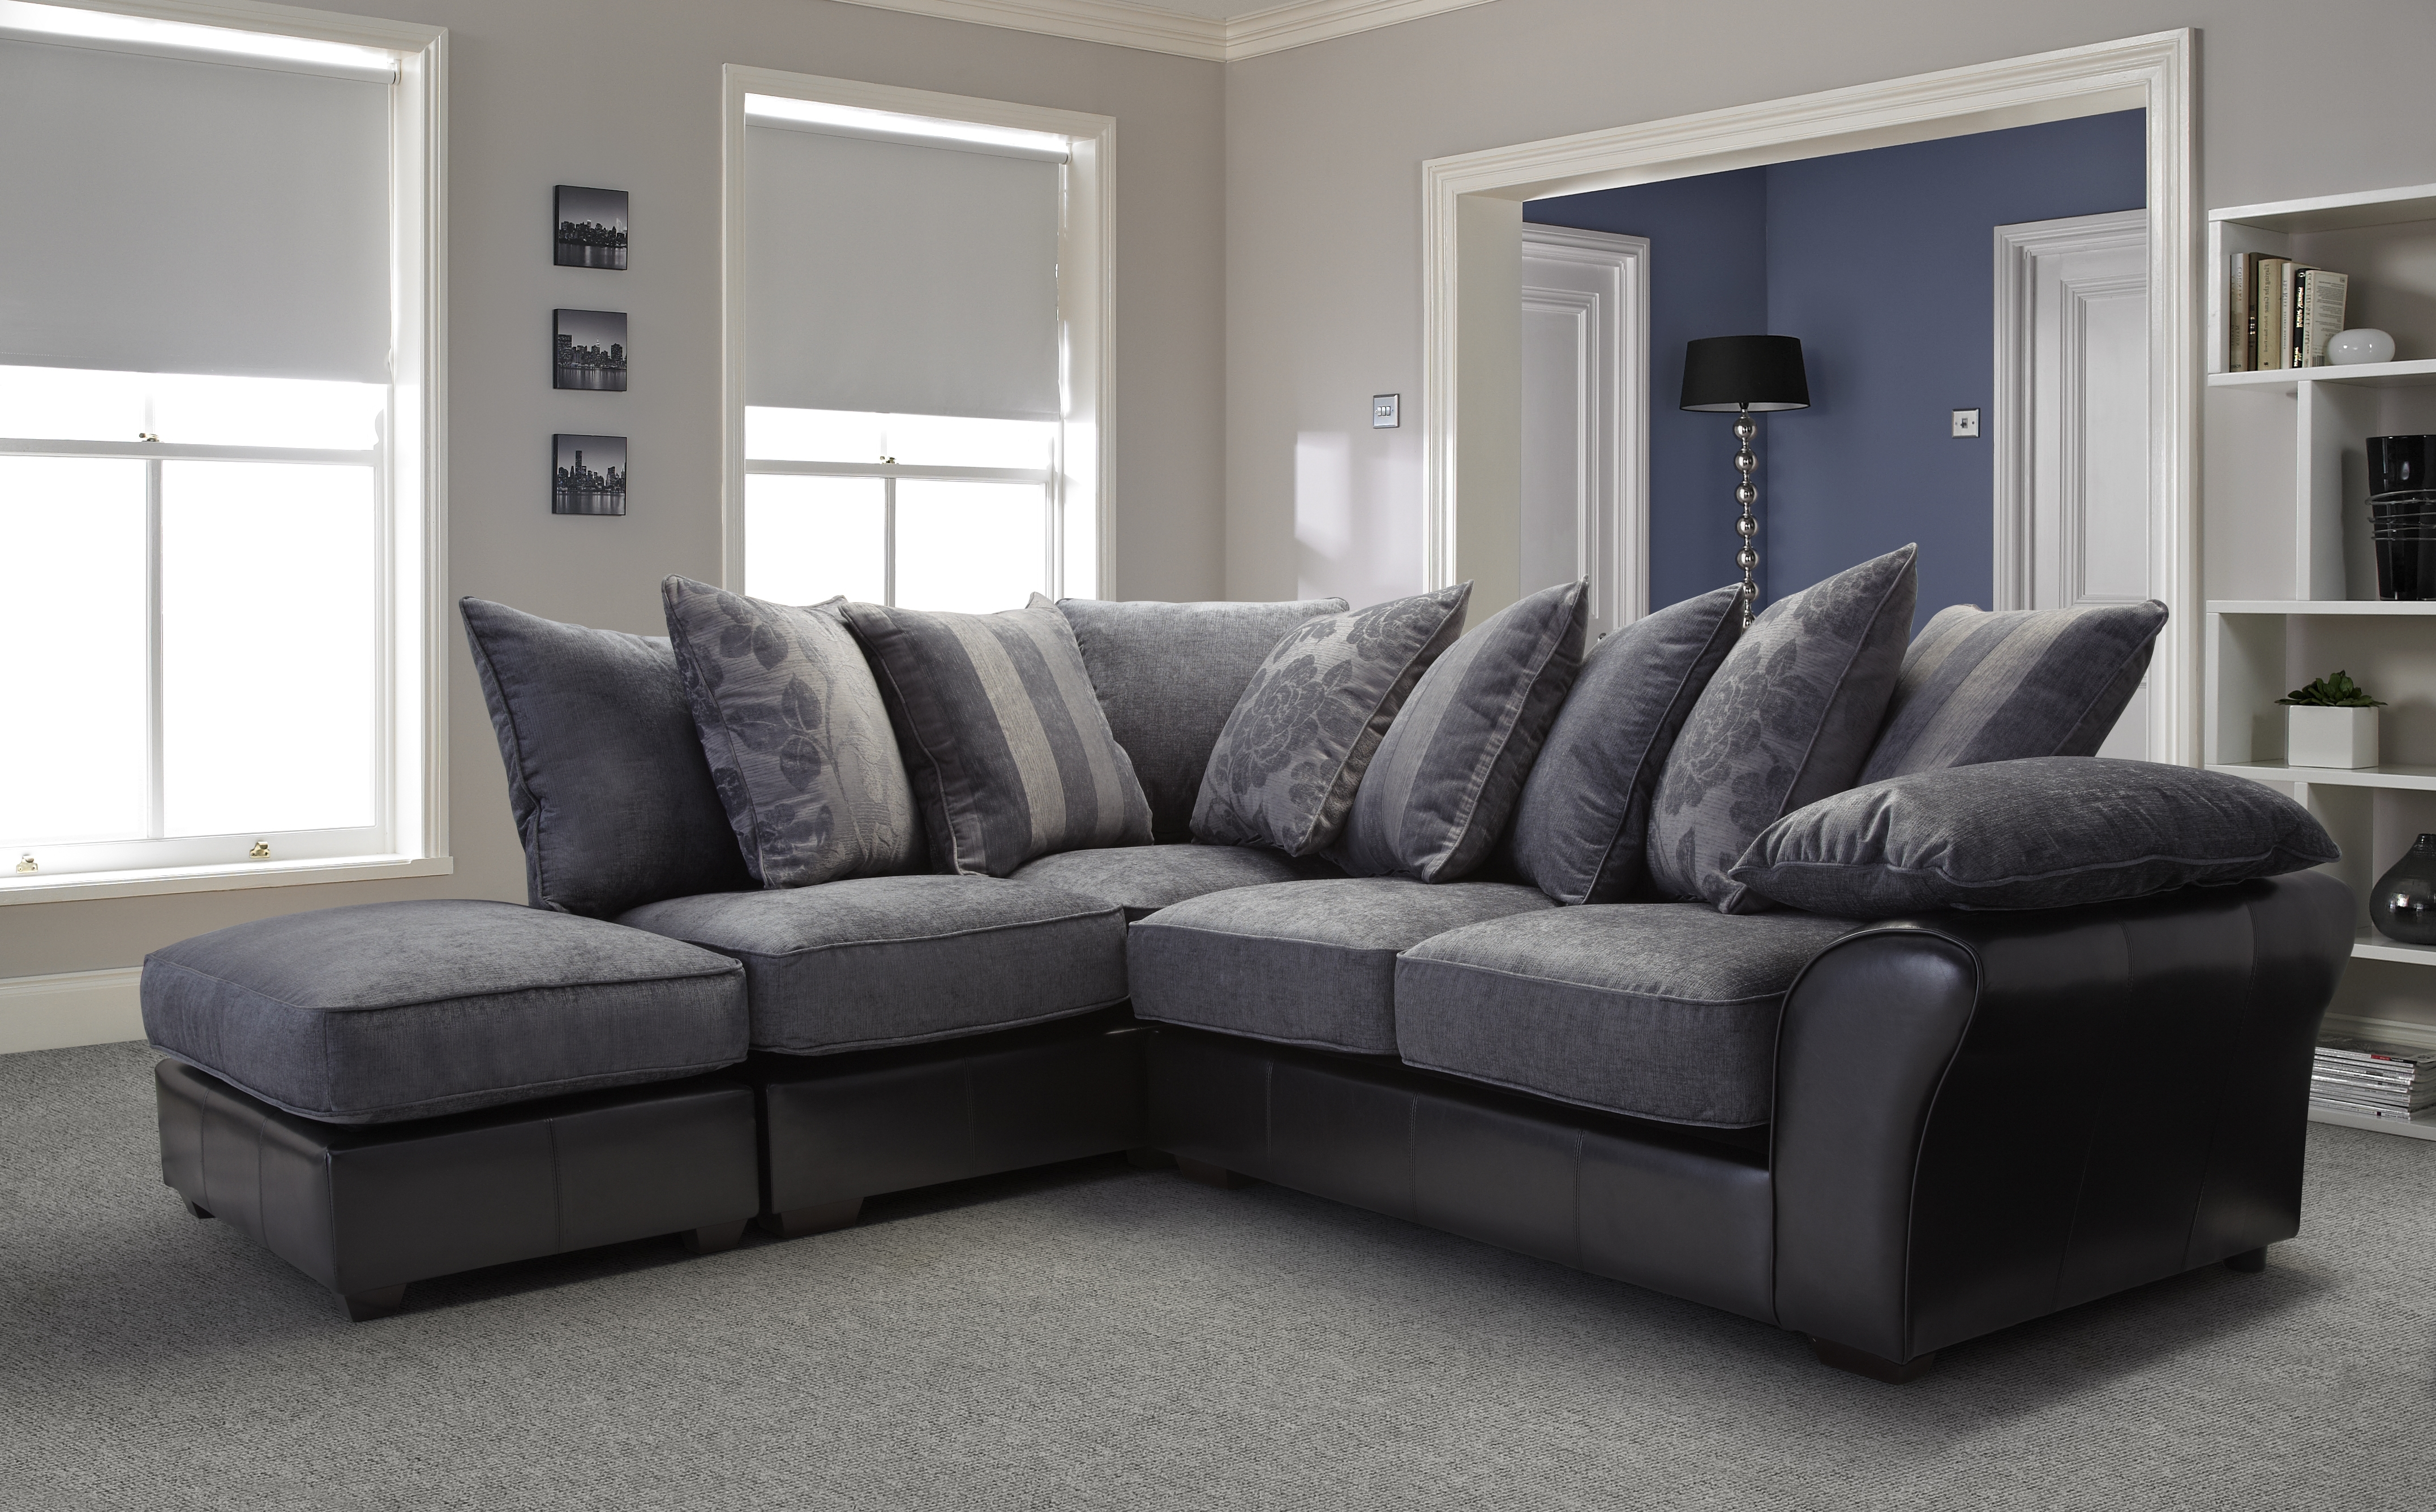 Favorite Leather Corner Sofas Regarding Furniture: Breathtaking Corner Sofas Decorating Ideas Leather (View 6 of 20)